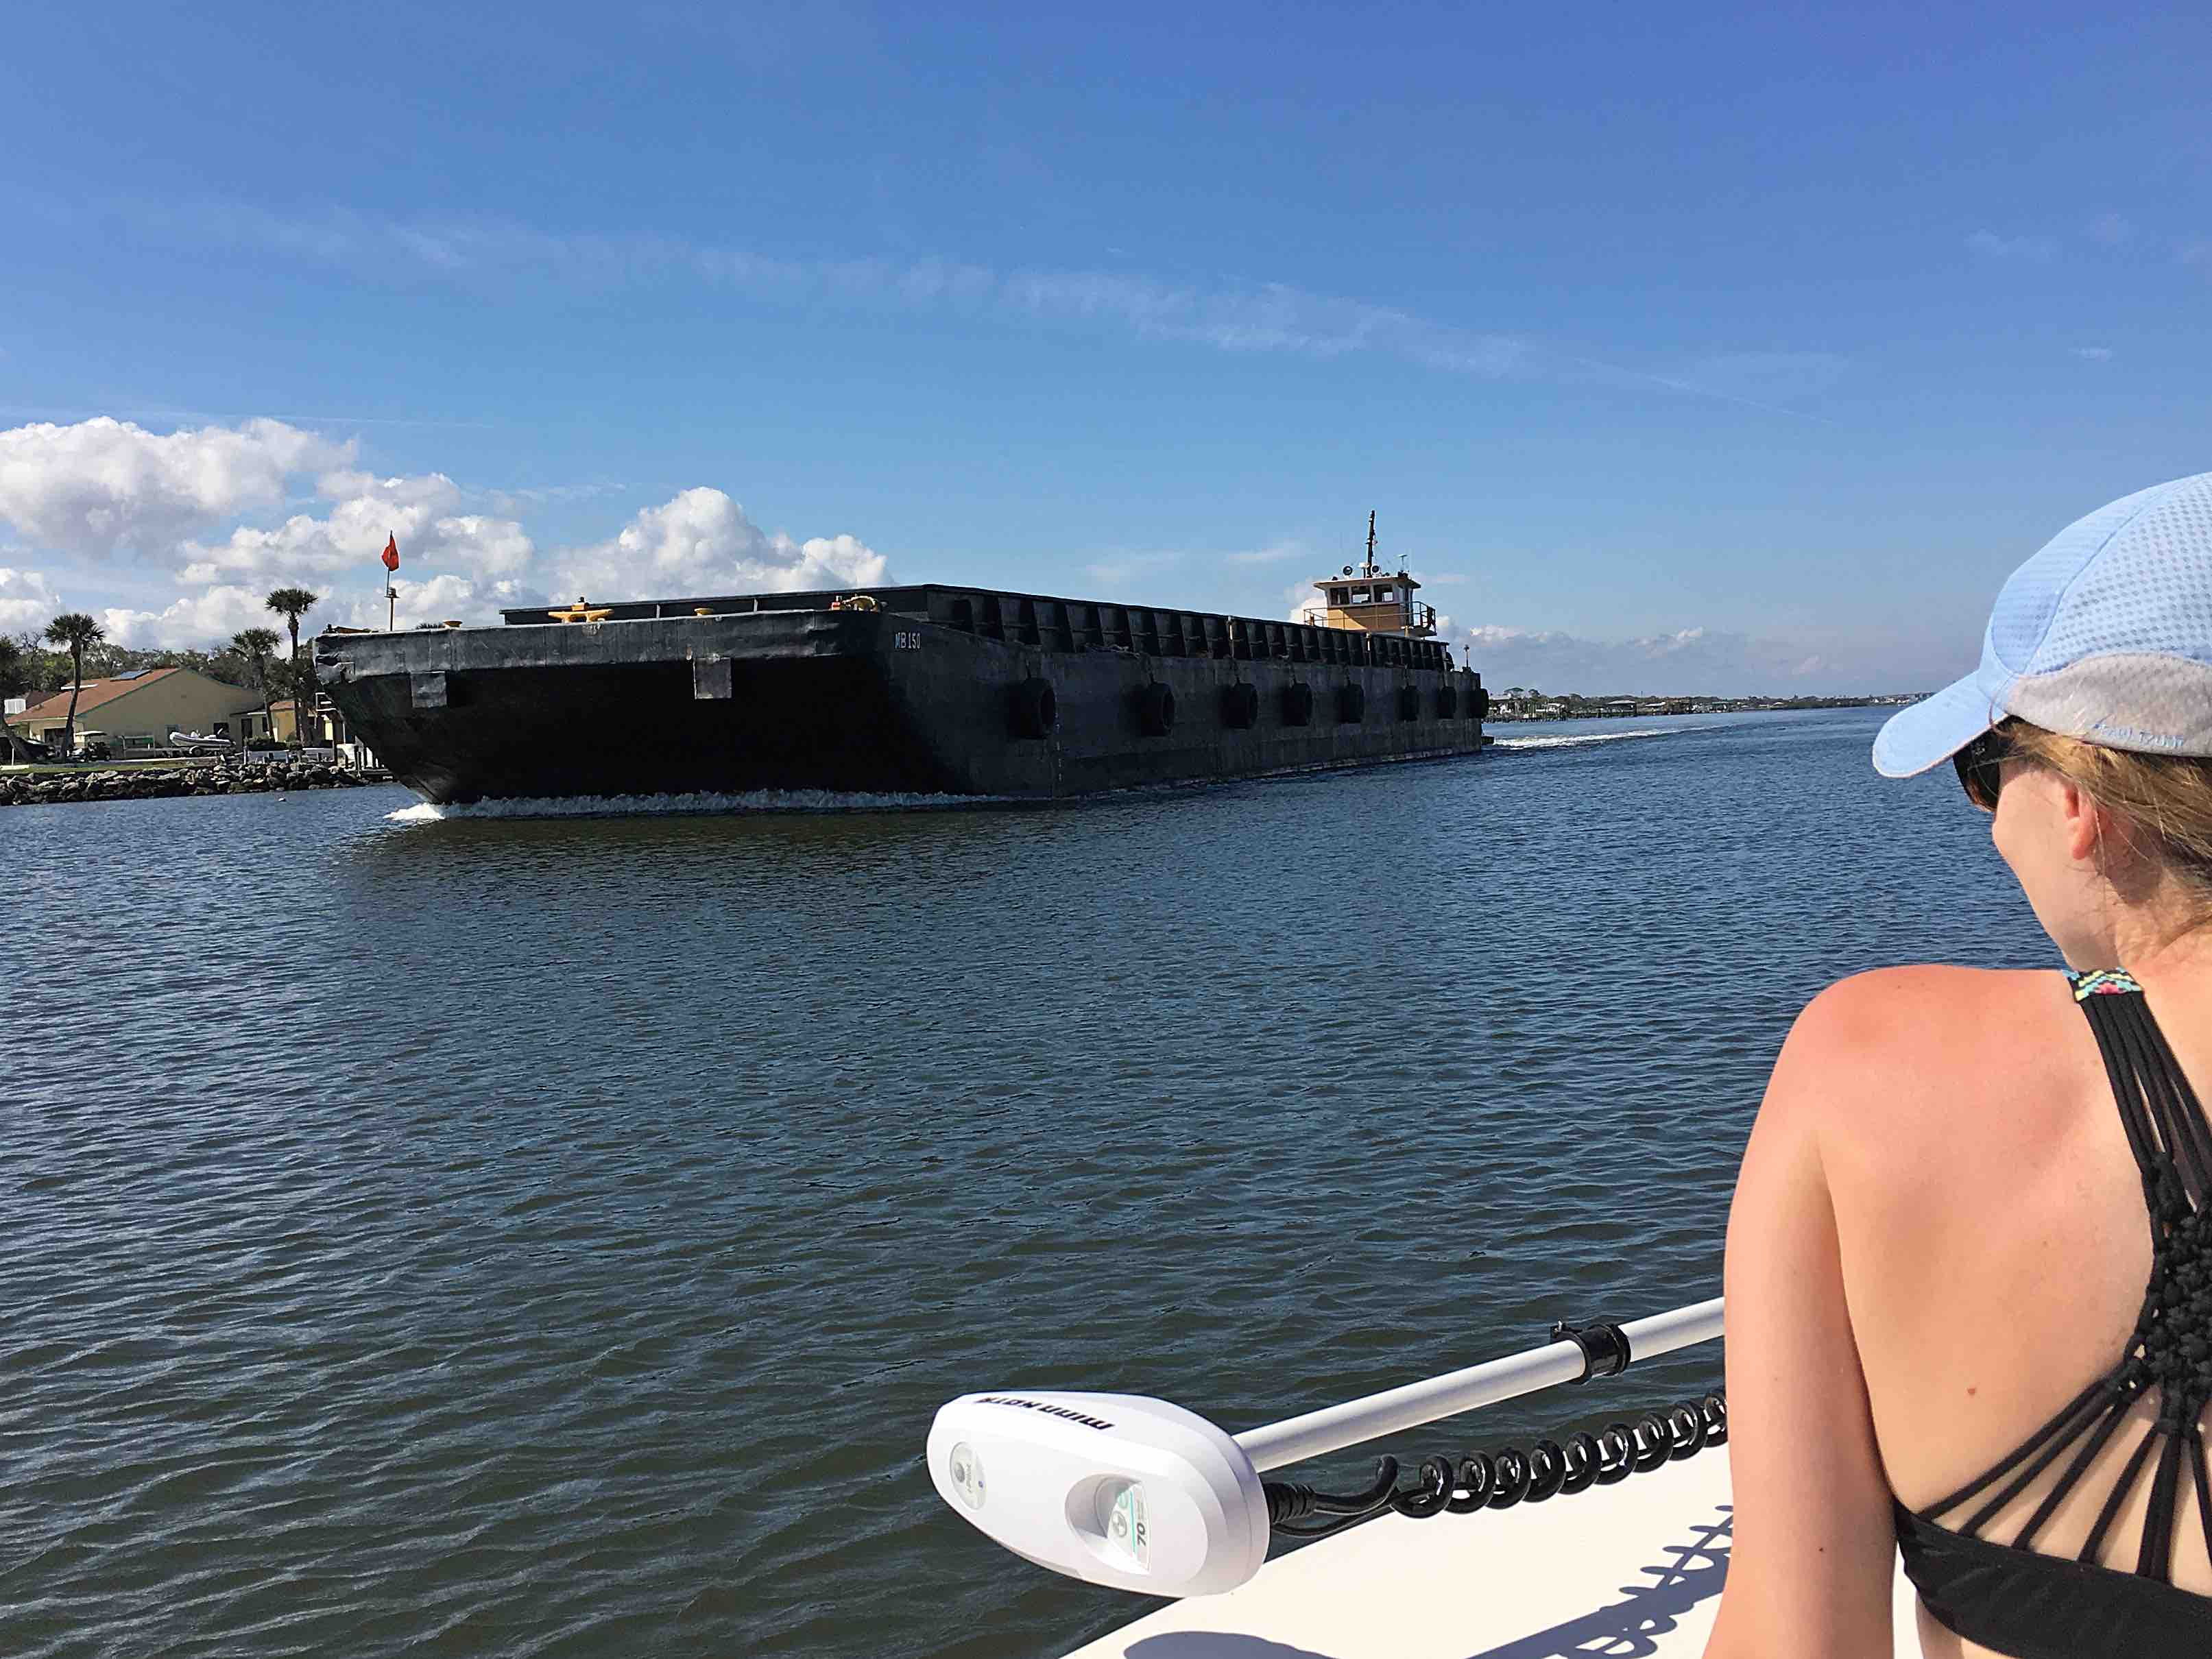 Big barge going past on the Indian River